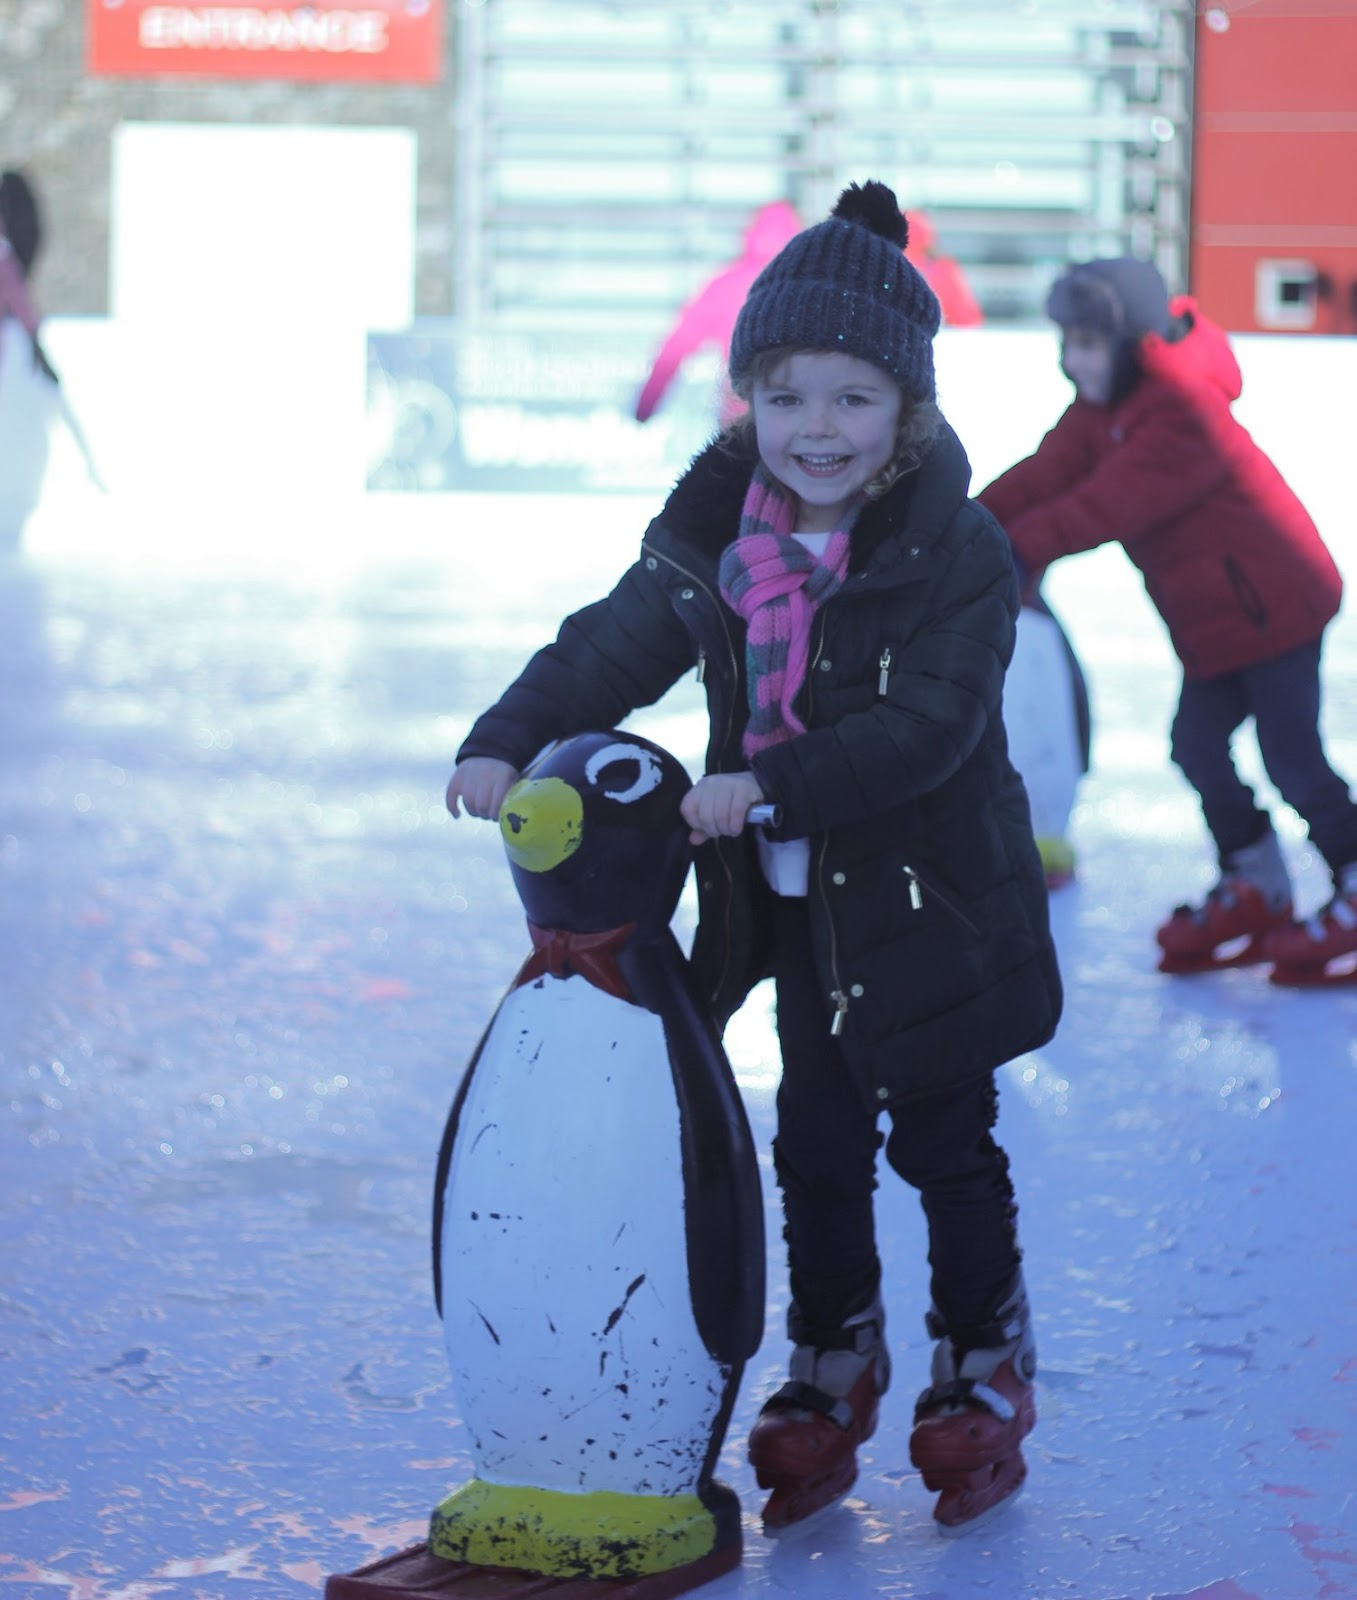 Woodhorn Museum | The Best Skating Rink for Small Children & Toddlers in the North East